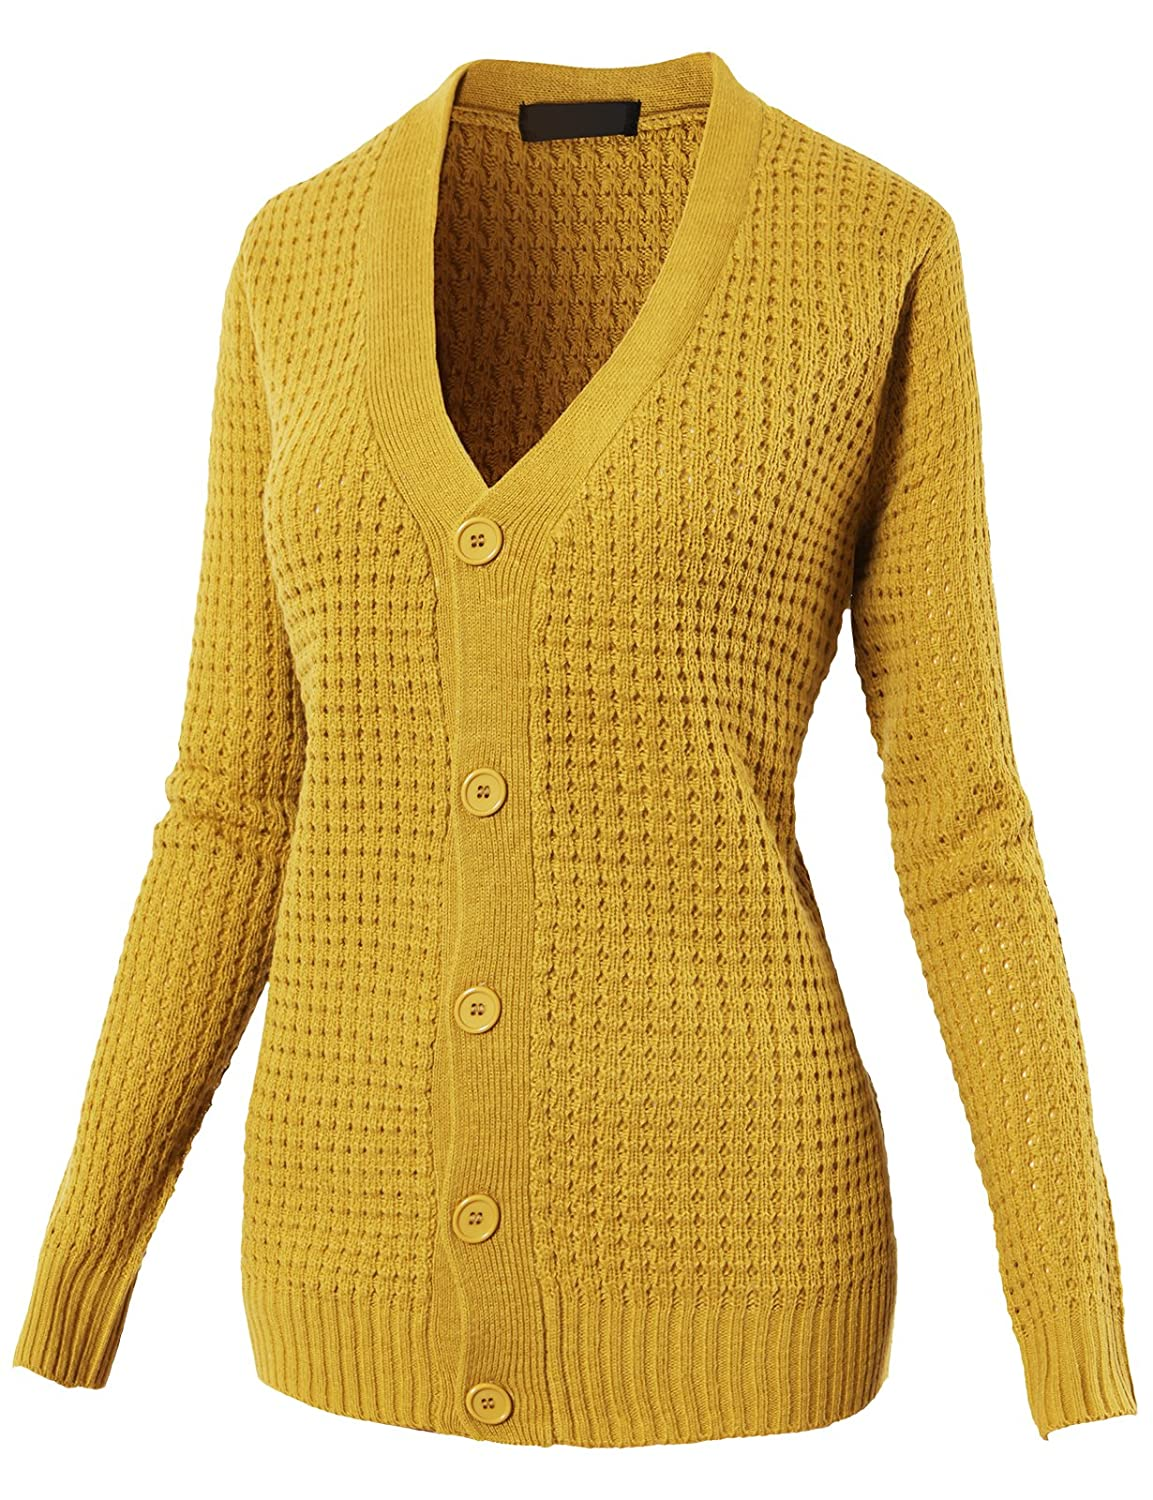 H2H Womens Comfy Button Down Long Sleeve Basic Knitted Cardigan Sweater